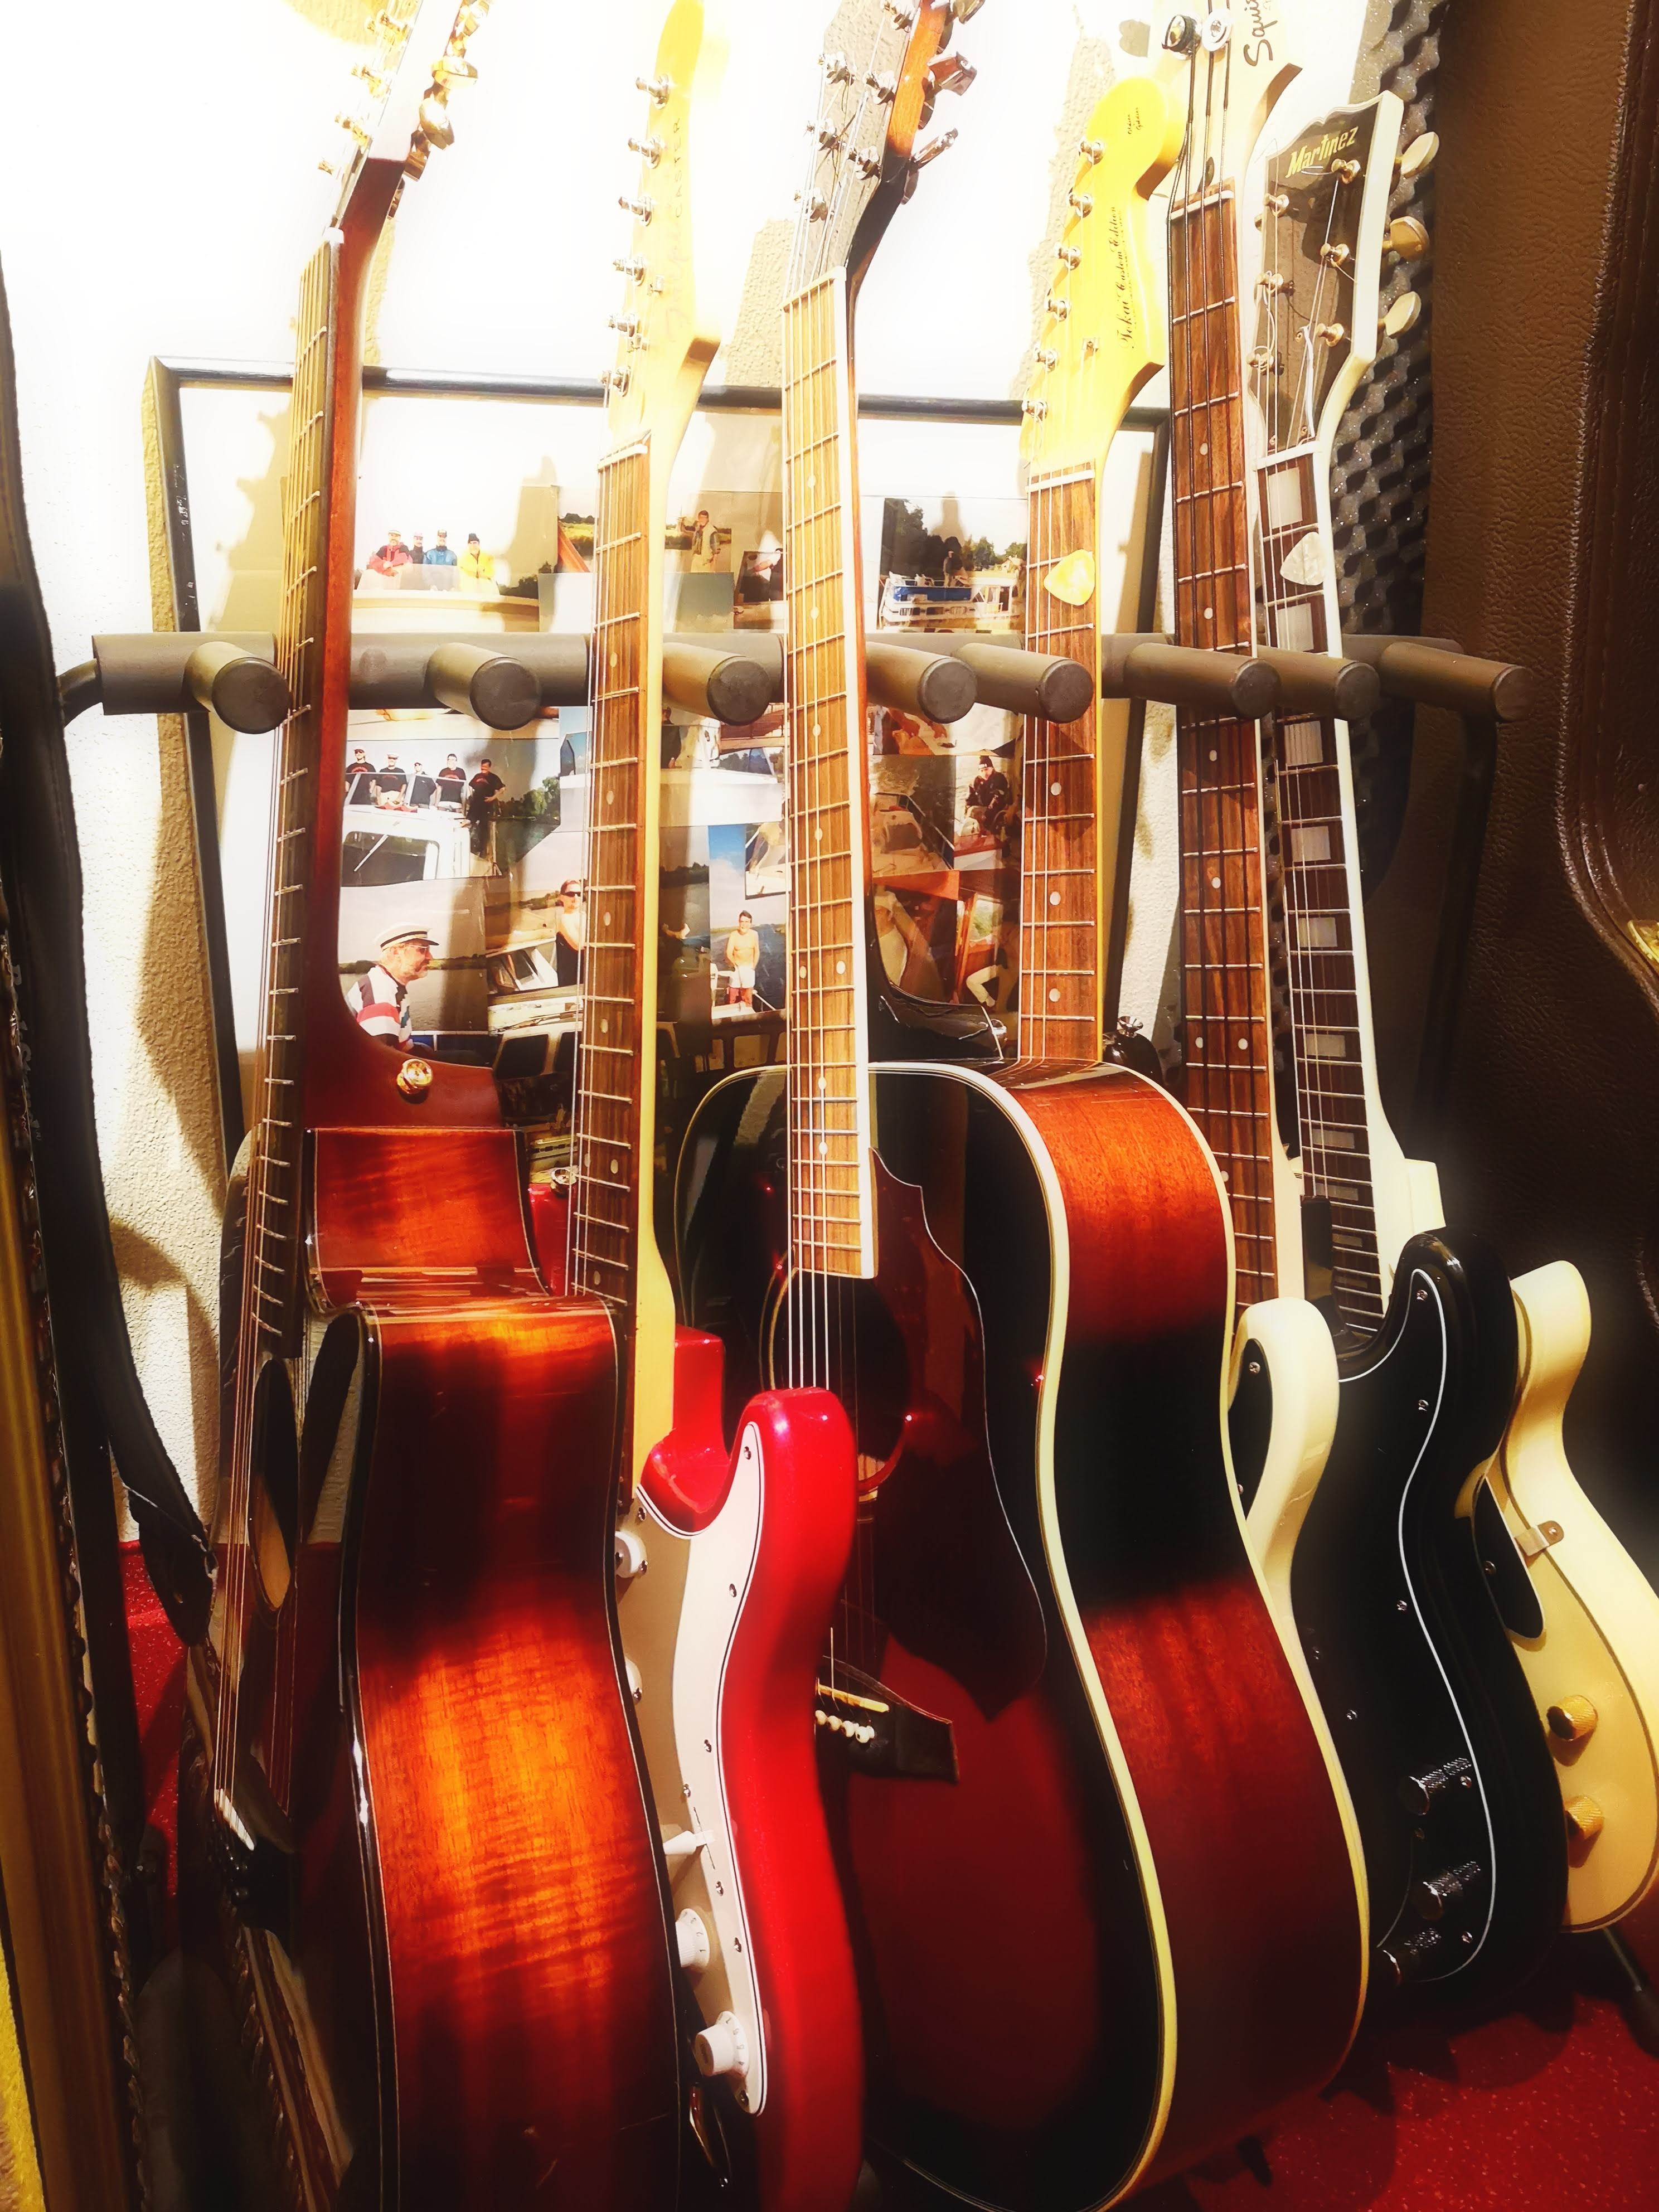 ...some Guitars